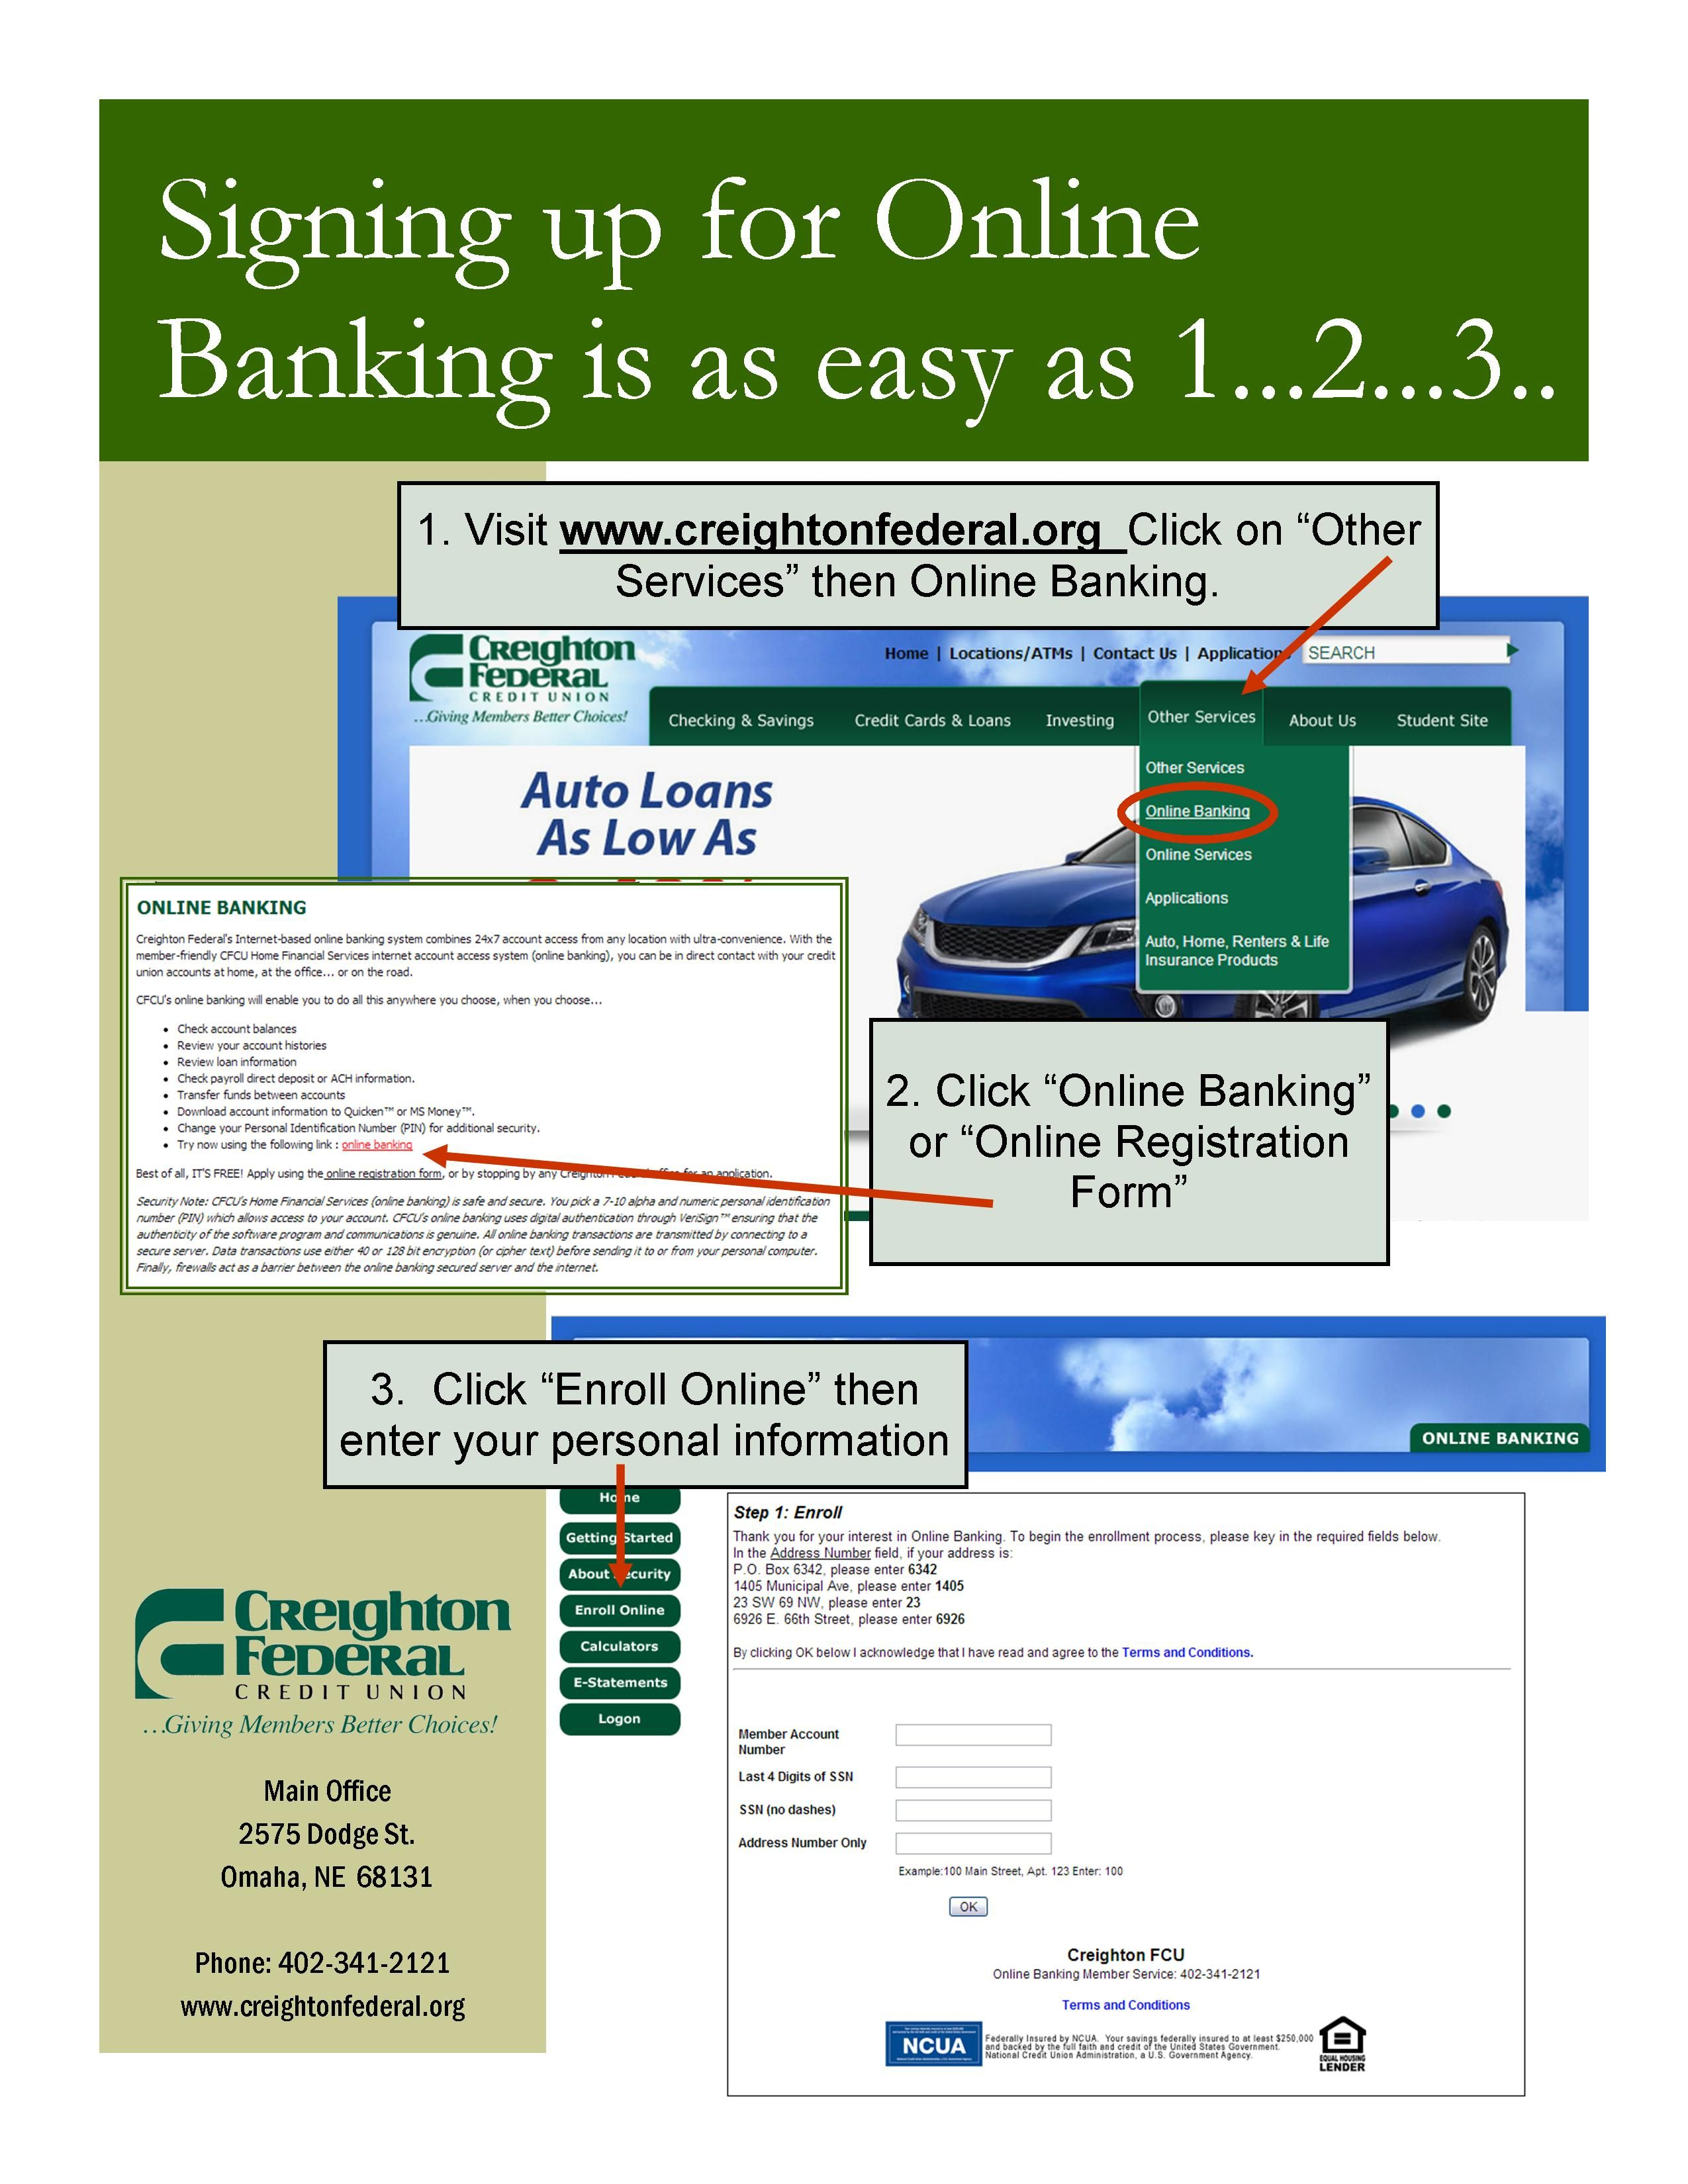 How To Enroll In Cfcu S Online Banking Online Banking Online Registration Form Online Registration